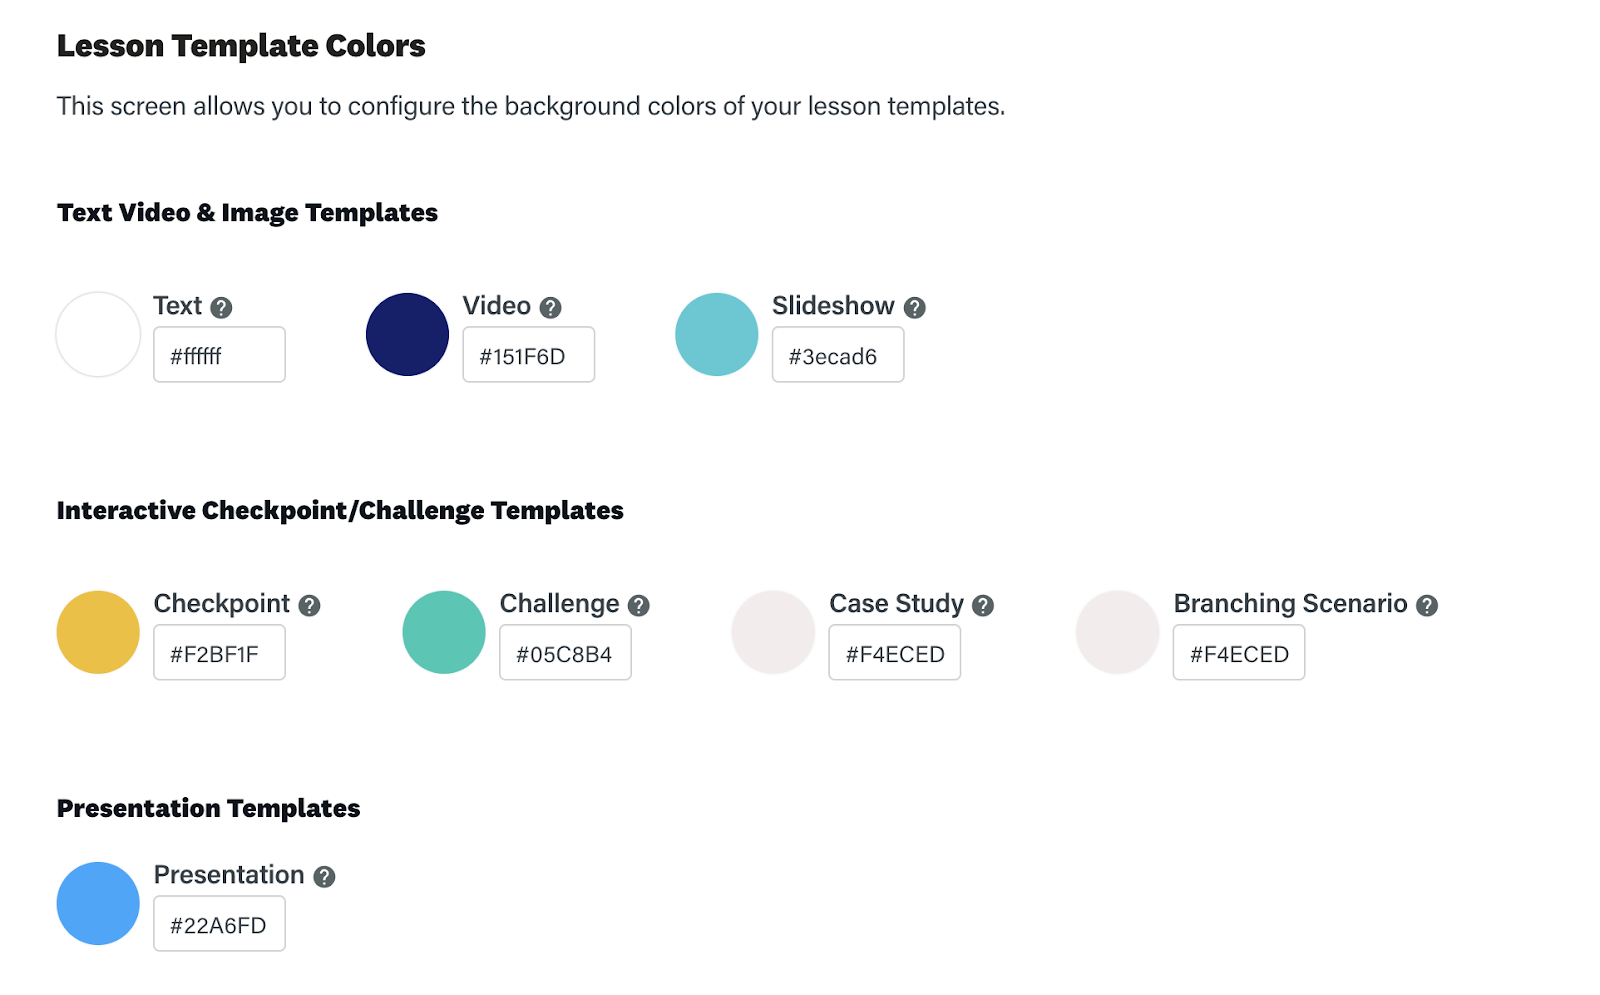 How to change the colors in an online training course for WCAG 2.0 compliance